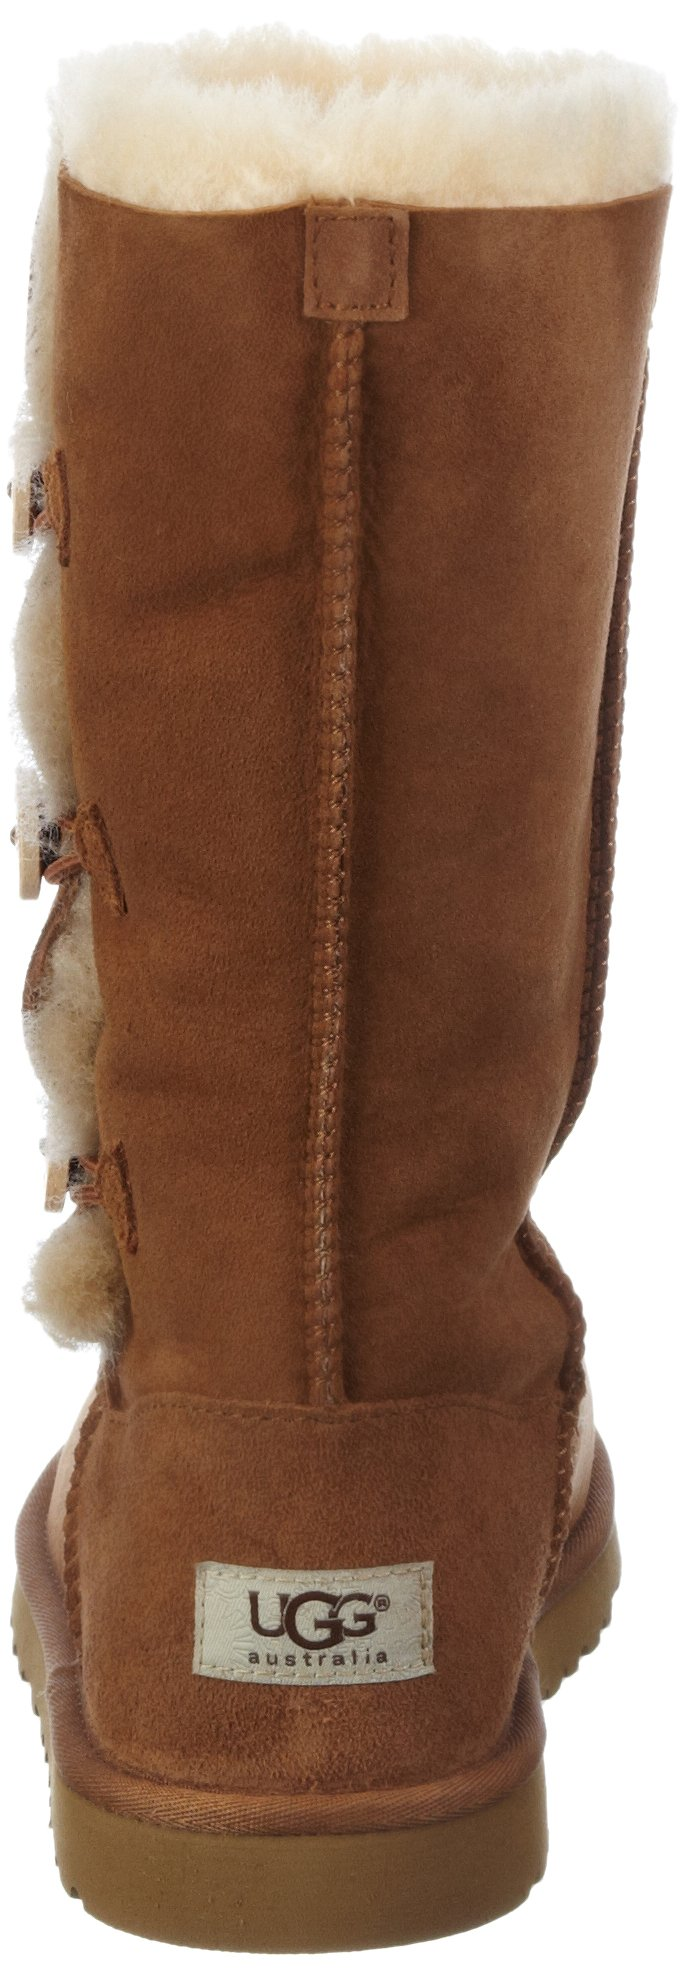 Kid's UGG Bailey Button Triplet chestnut size 4 us by UGG (Image #2)